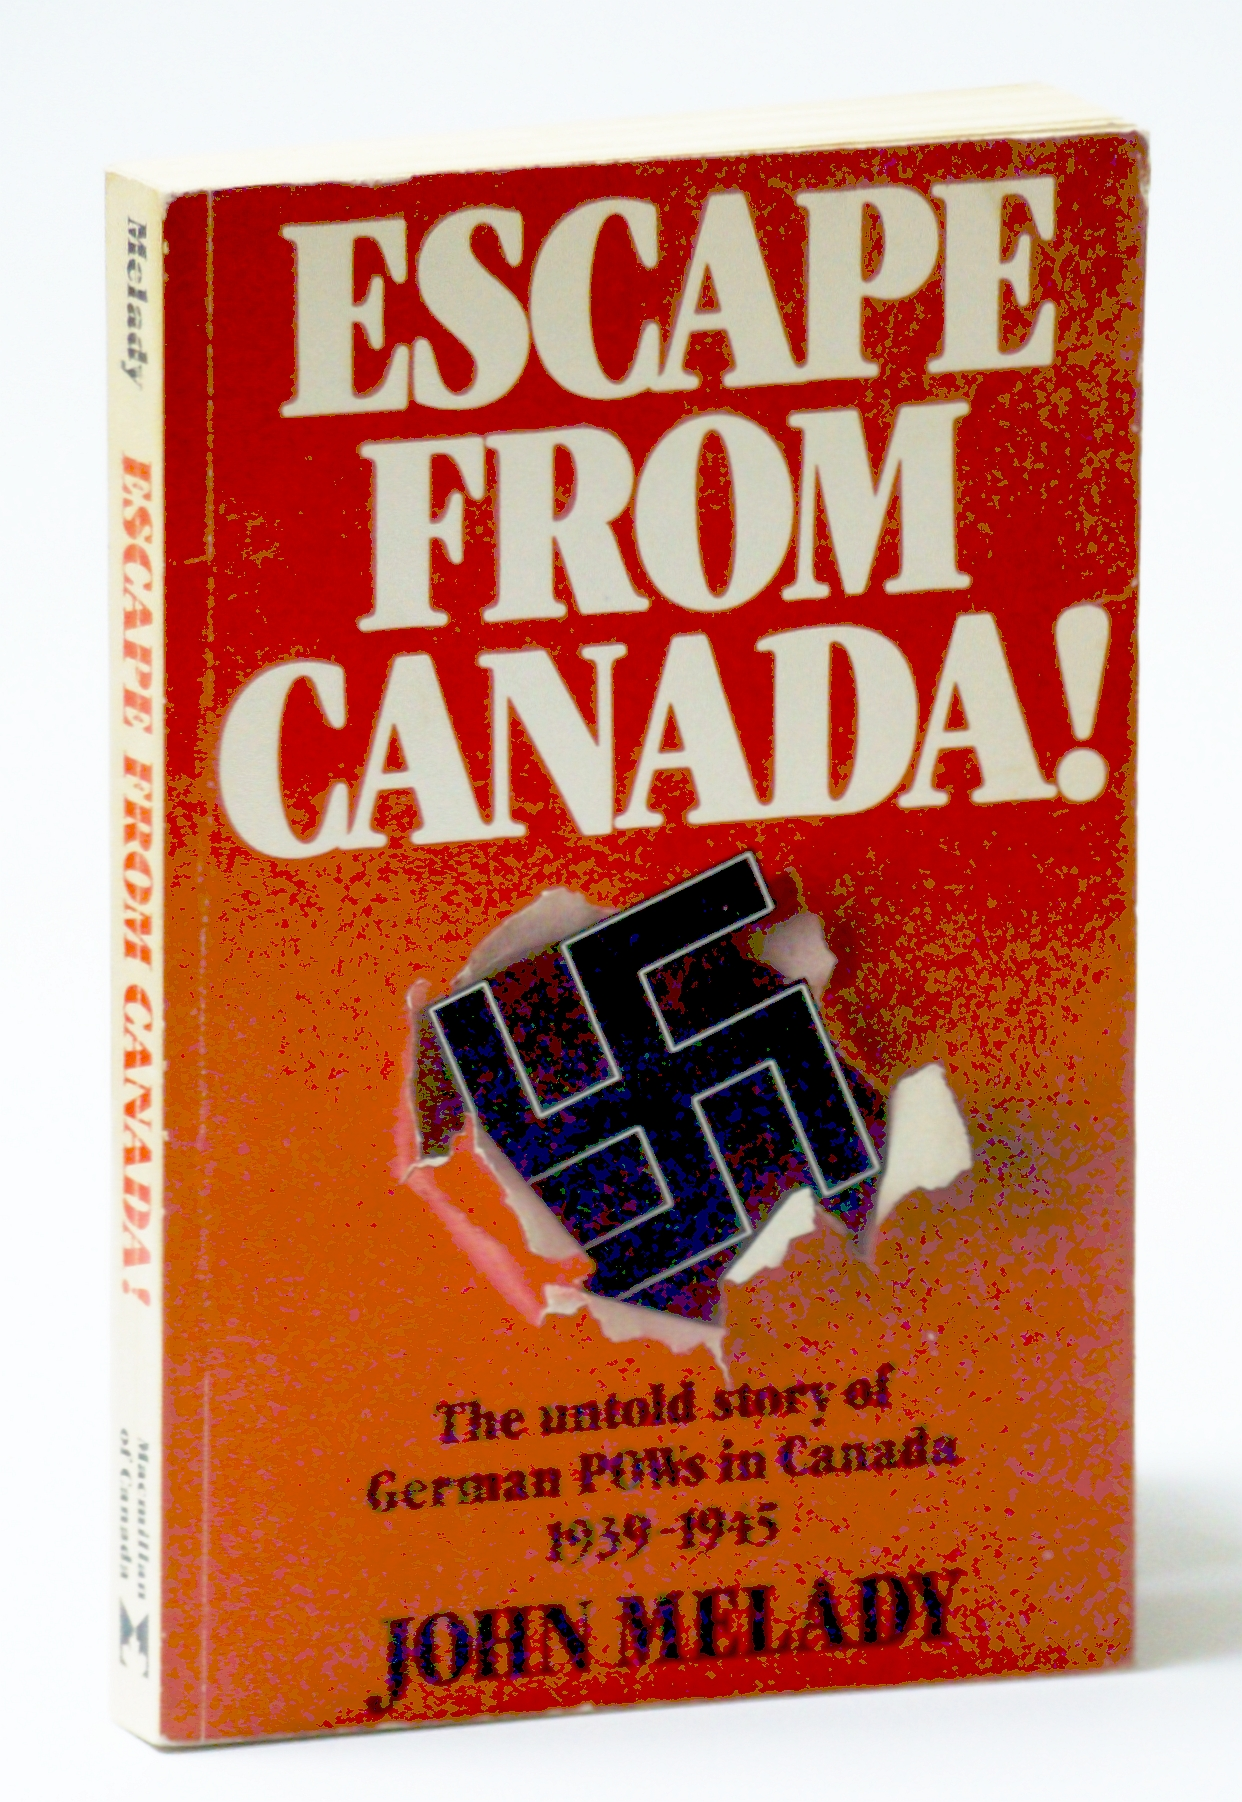 Image for Escape from Canada!: The untold story of German POWs in Canada 1939-1945 (Macmillan paperbacks)